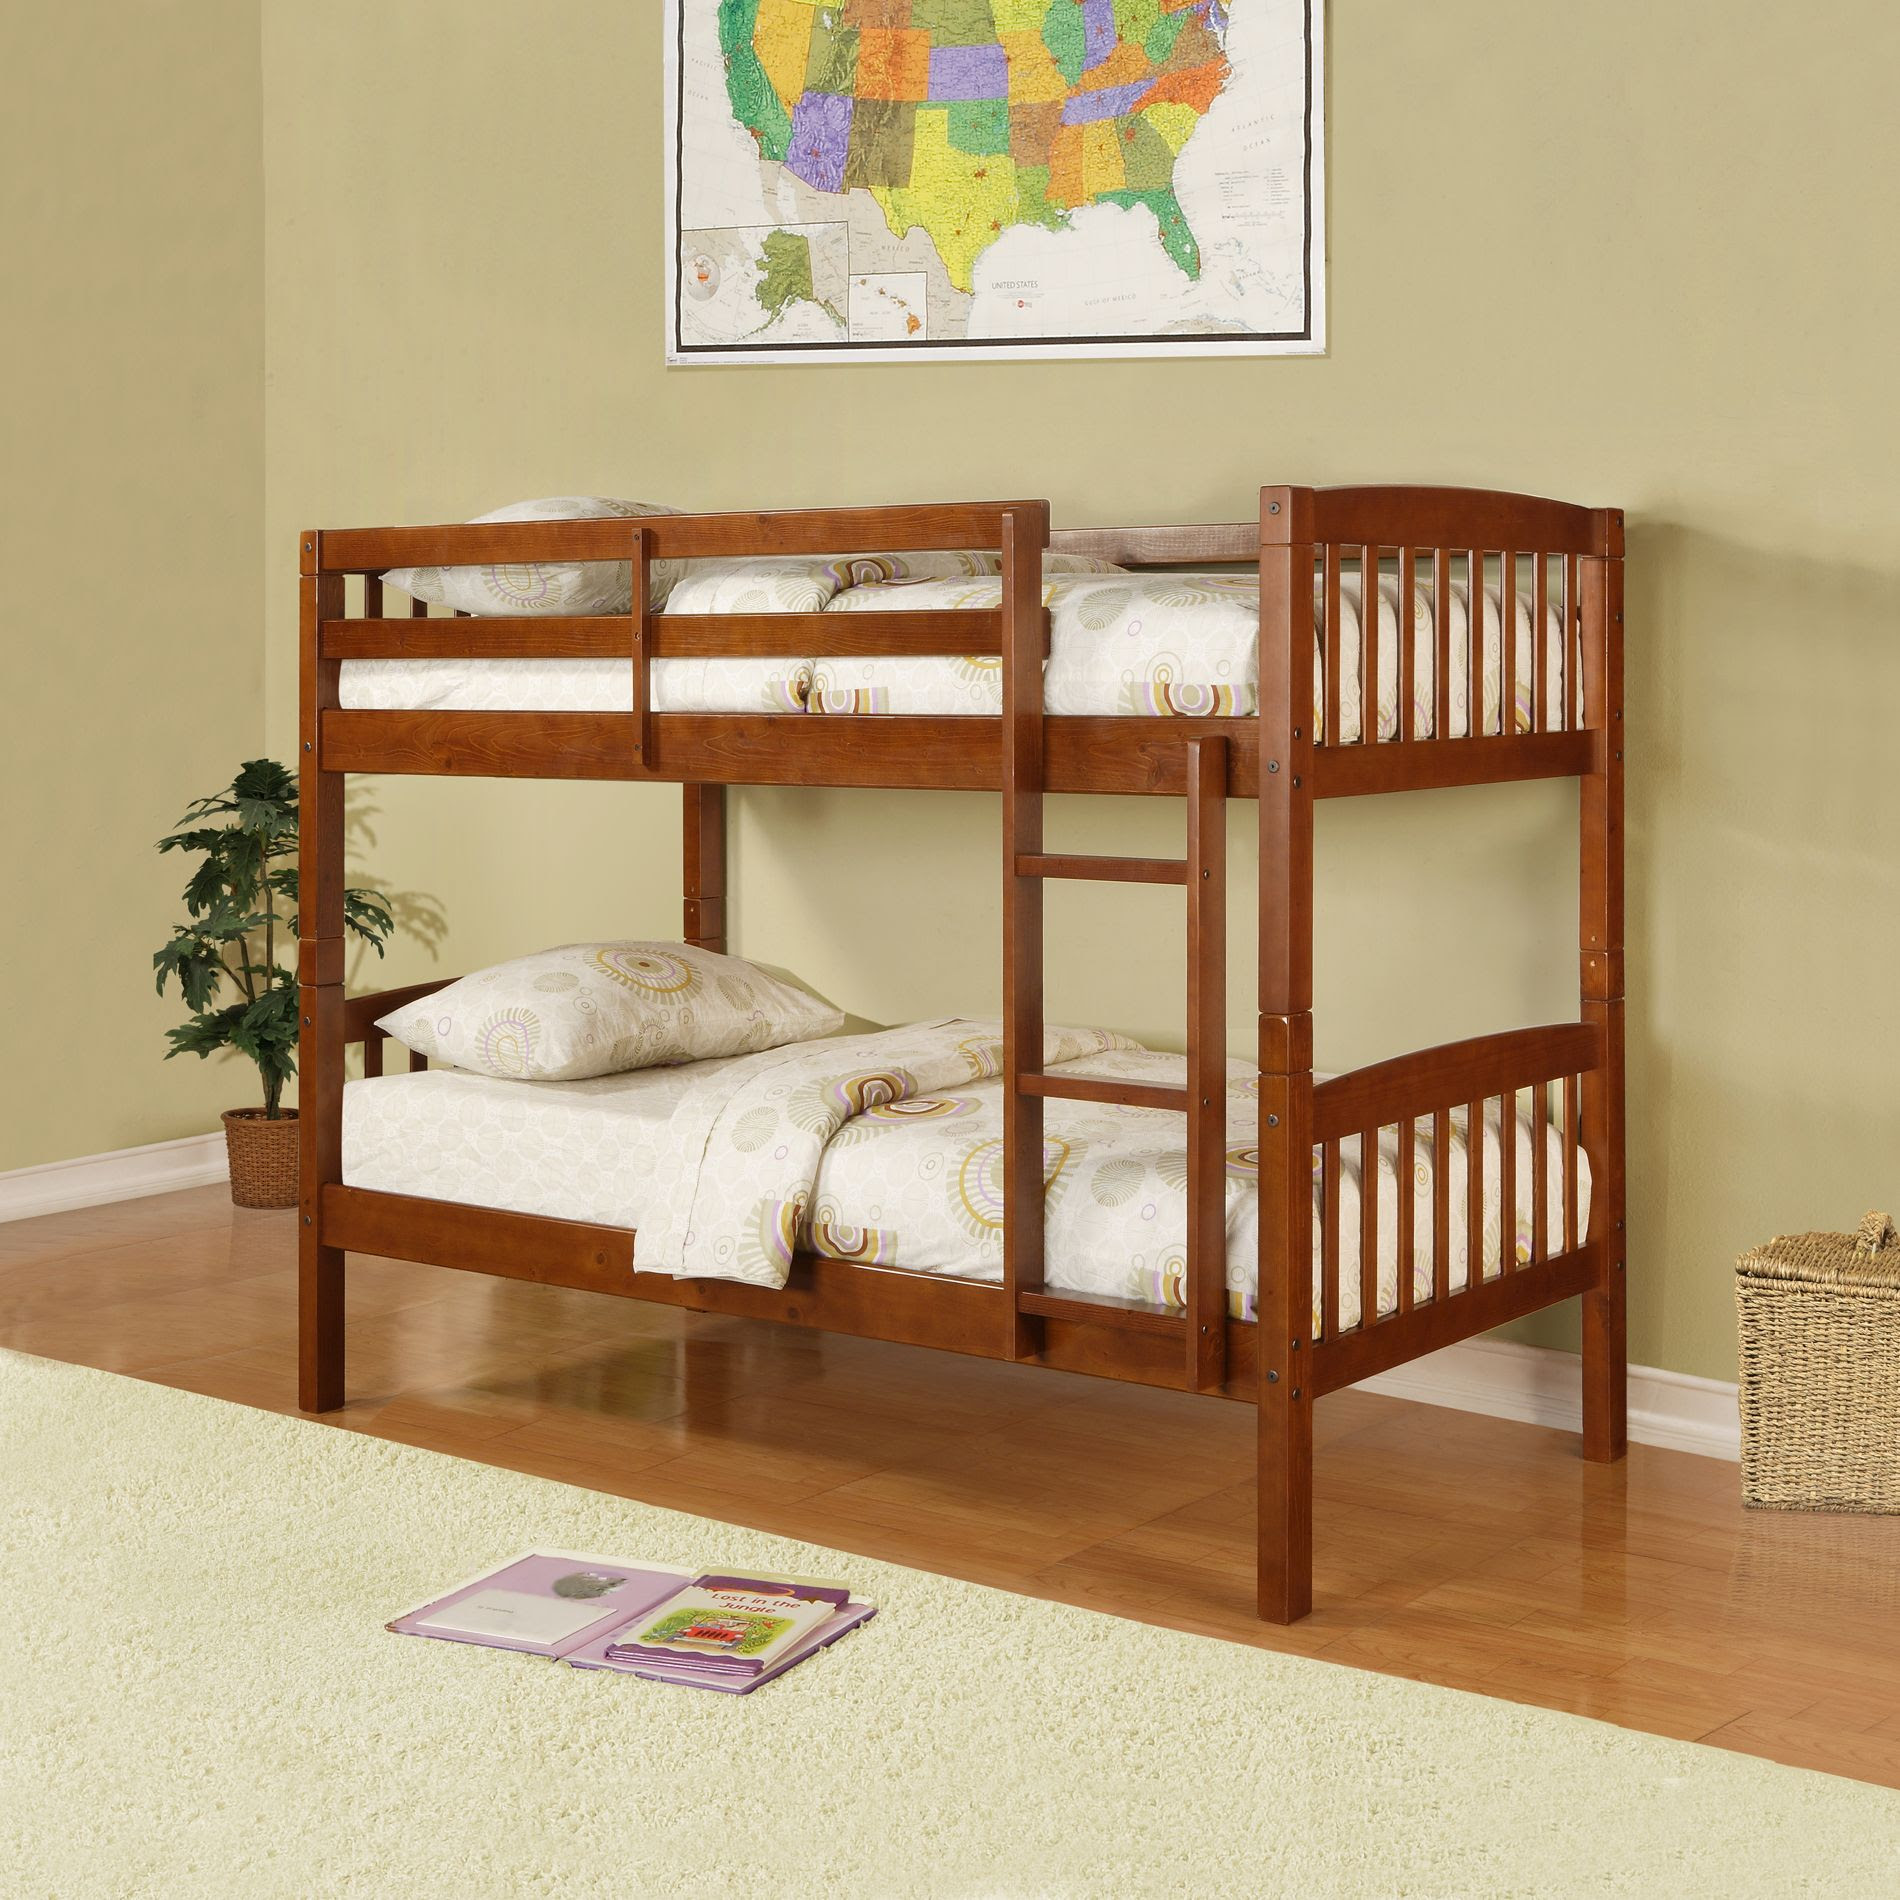 Kids Beds: Shop Beds, Trundles, Lofts and Bunk Beds for Kids at Sears